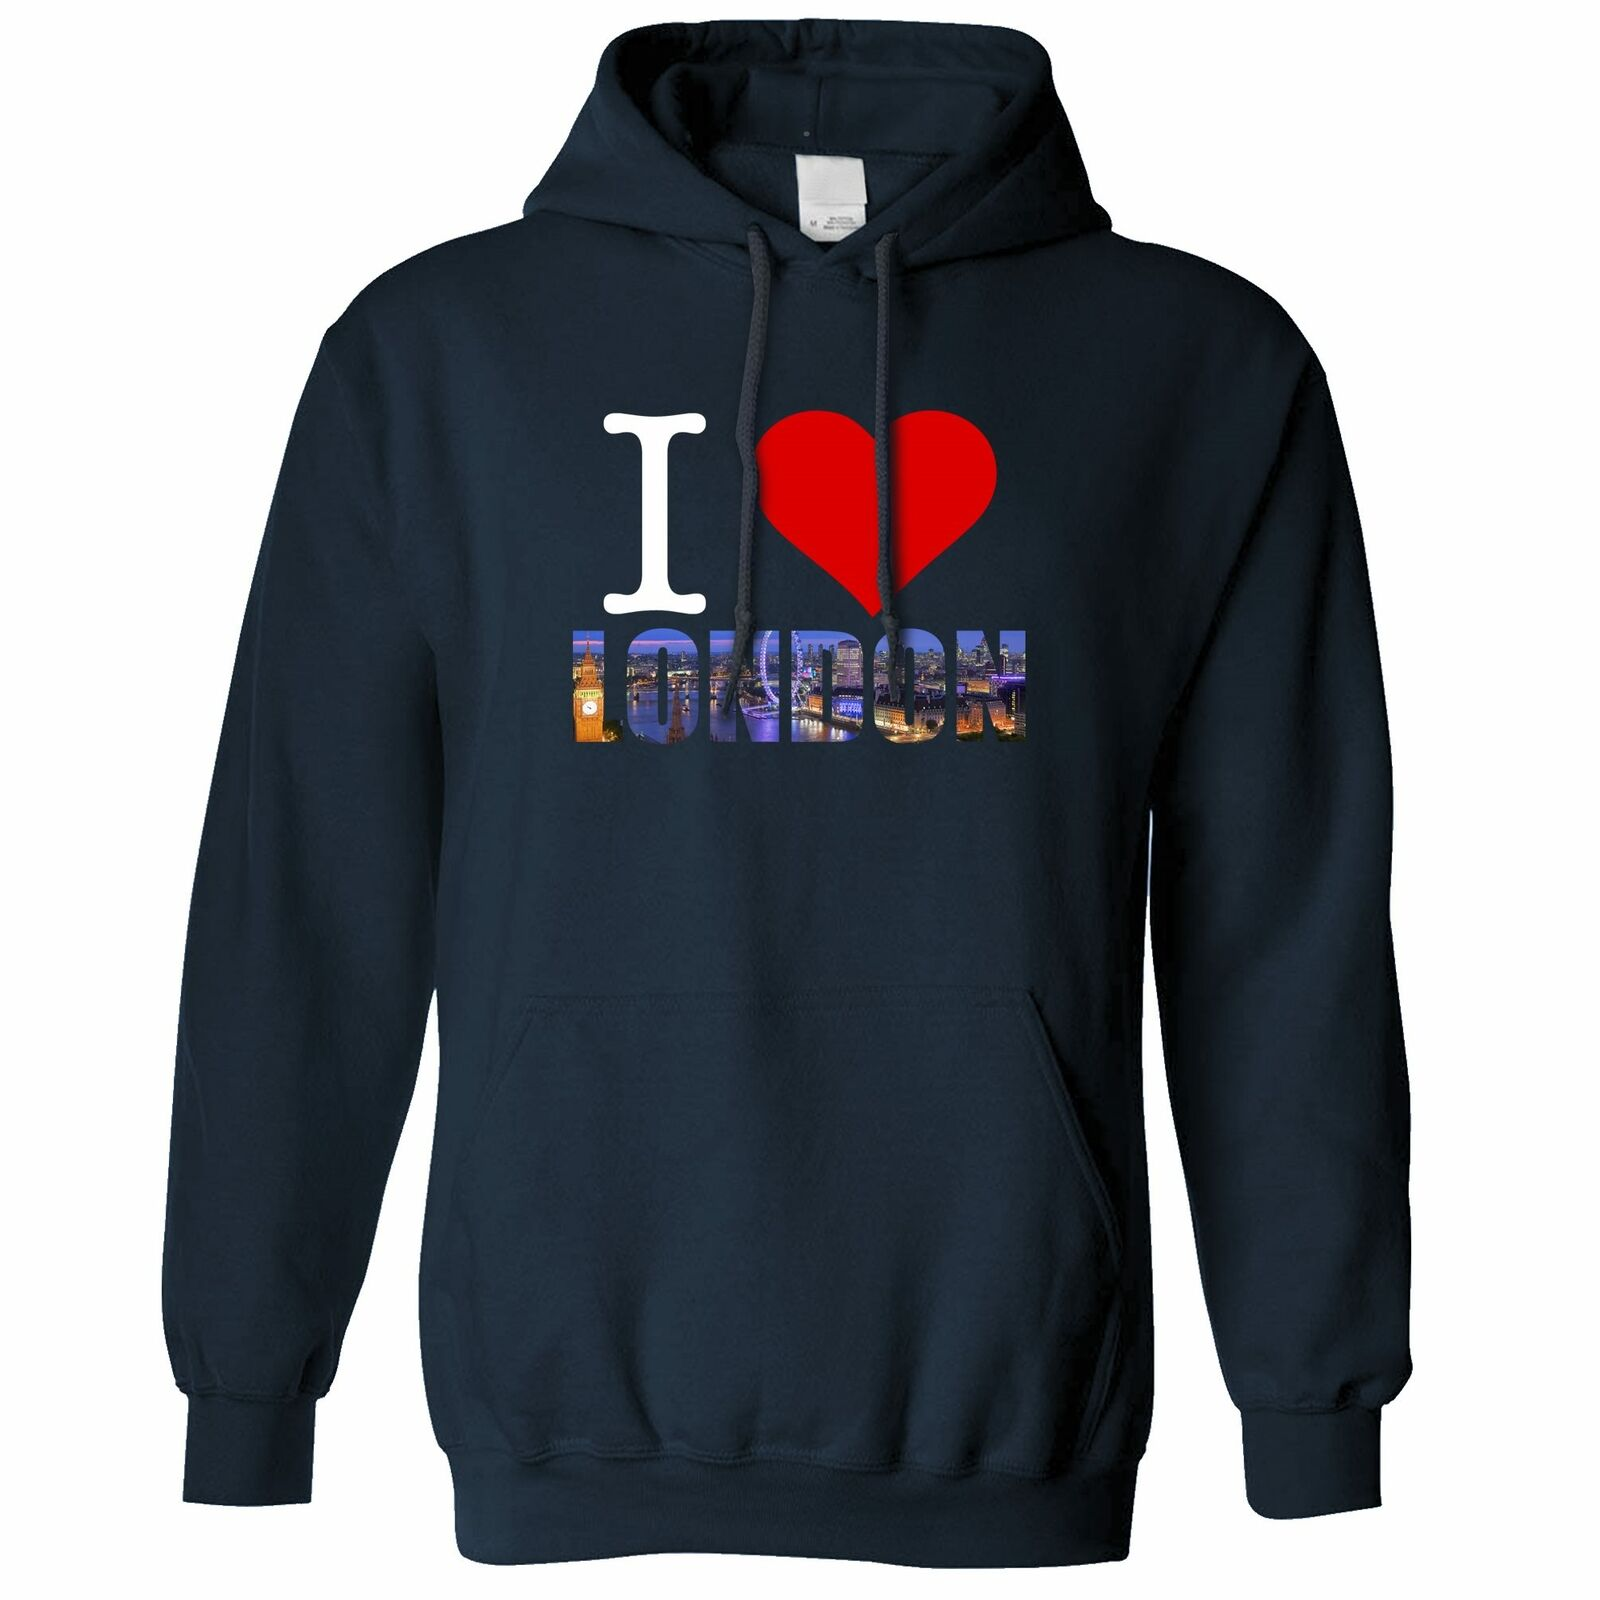 Tourist Hoodie Hood I Love London England Slogan United Kingdom Queen Prince